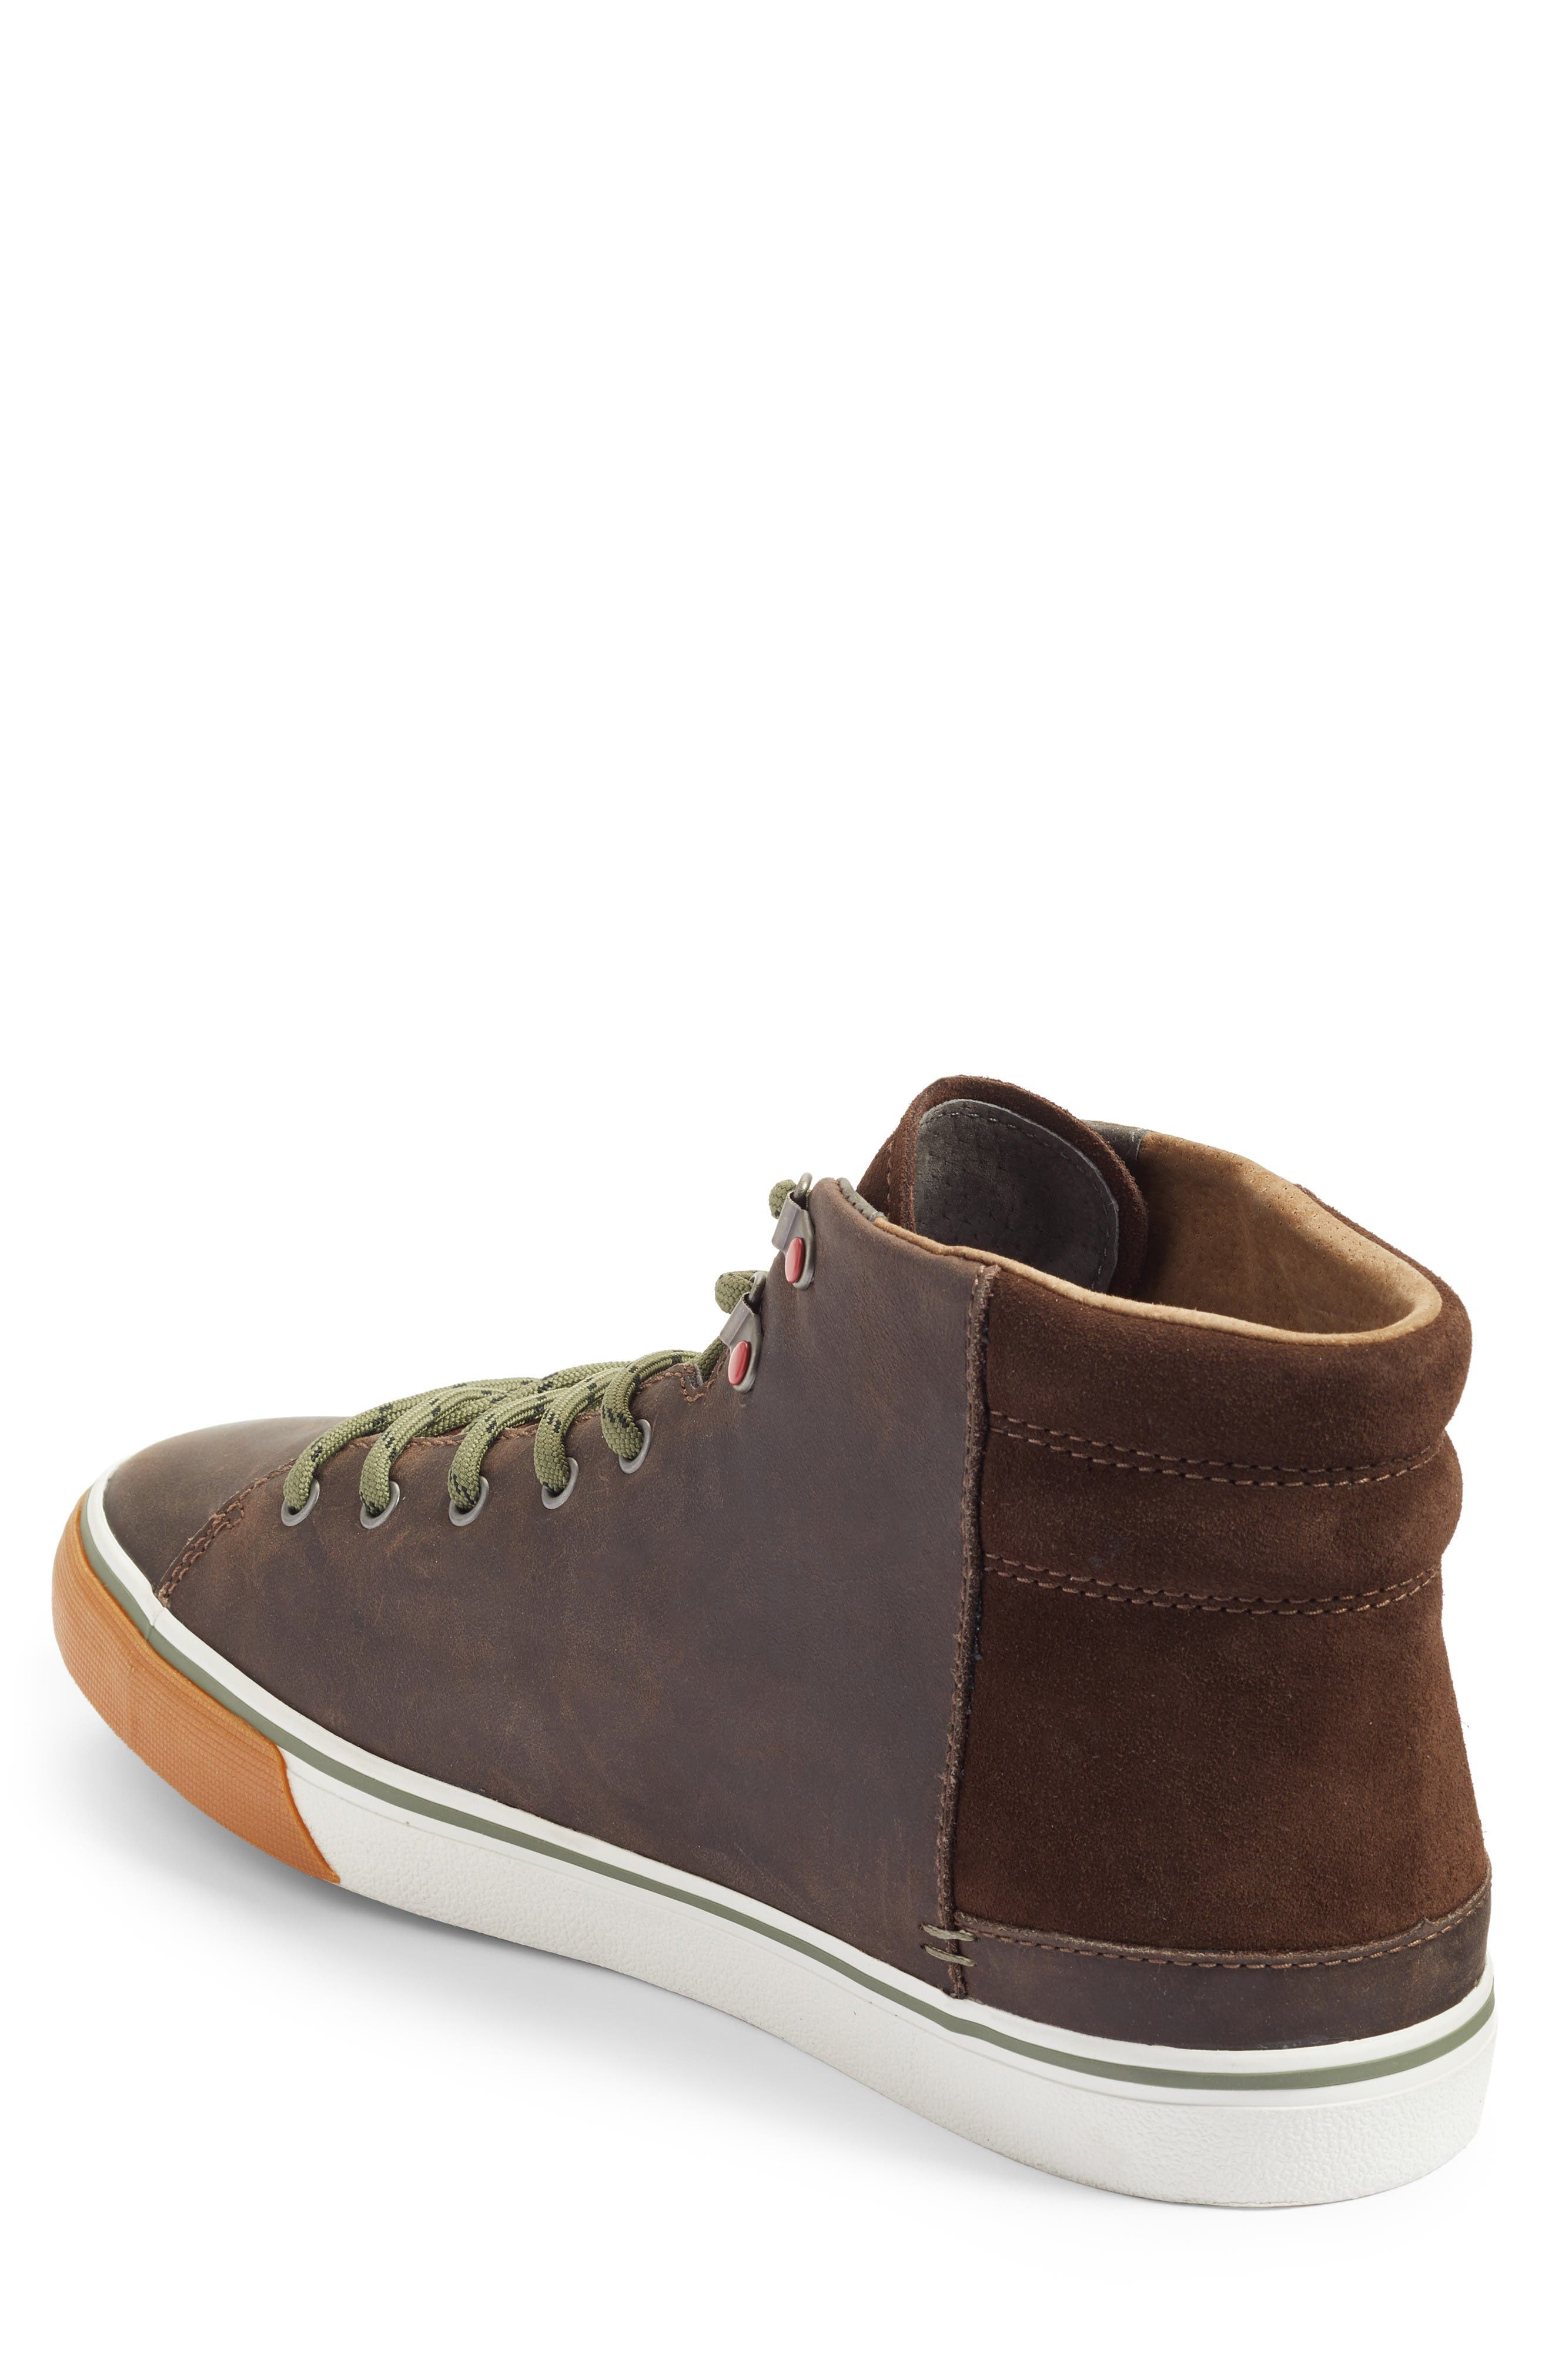 Hoyt High Top Sneaker,                             Alternate thumbnail 2, color,                             Grizzly